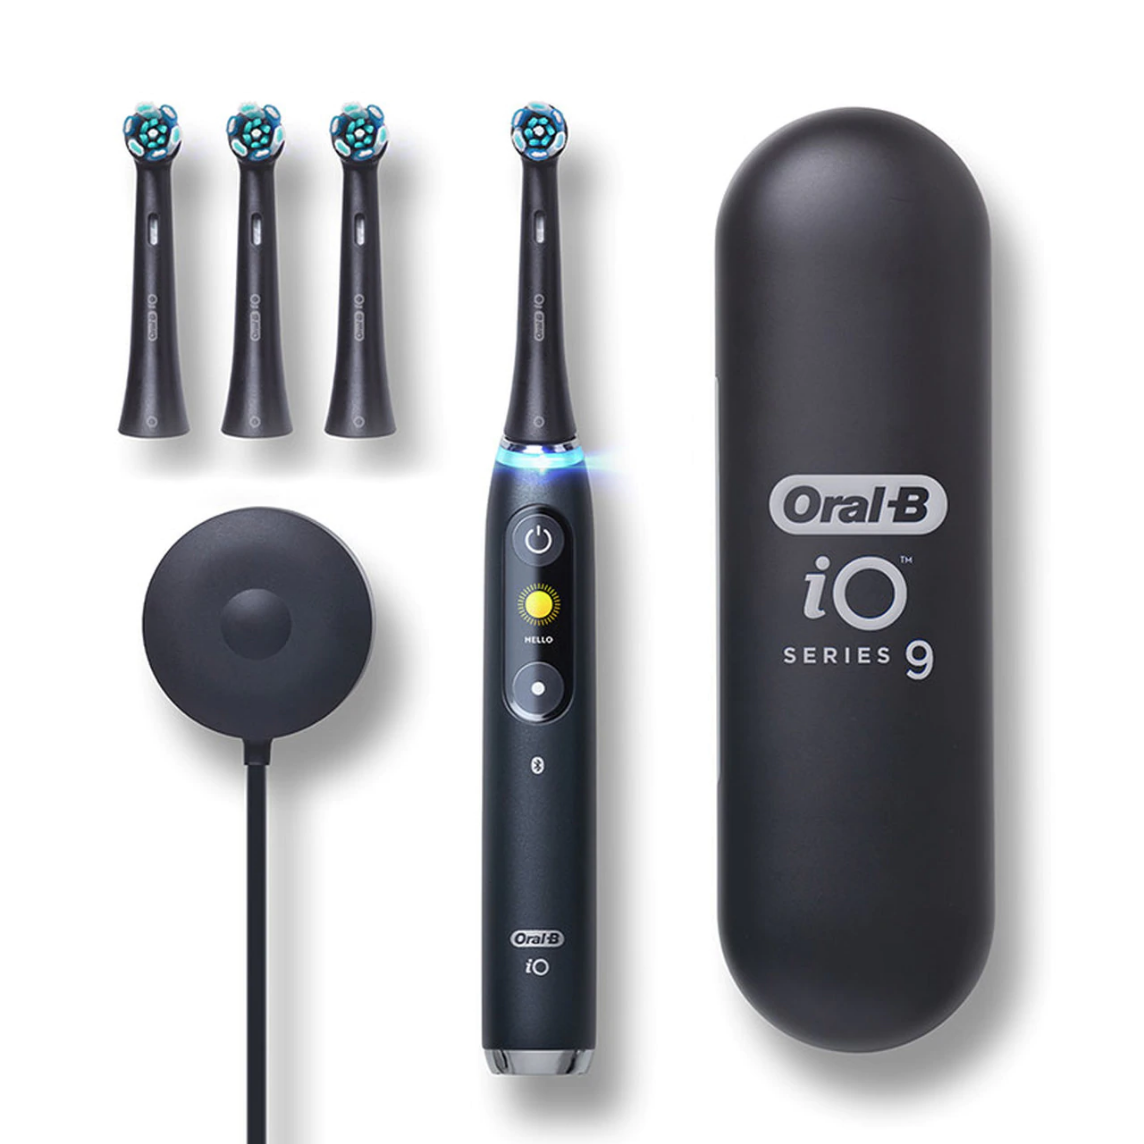 iO Series 9 Rechargeable Electric Toothbrush